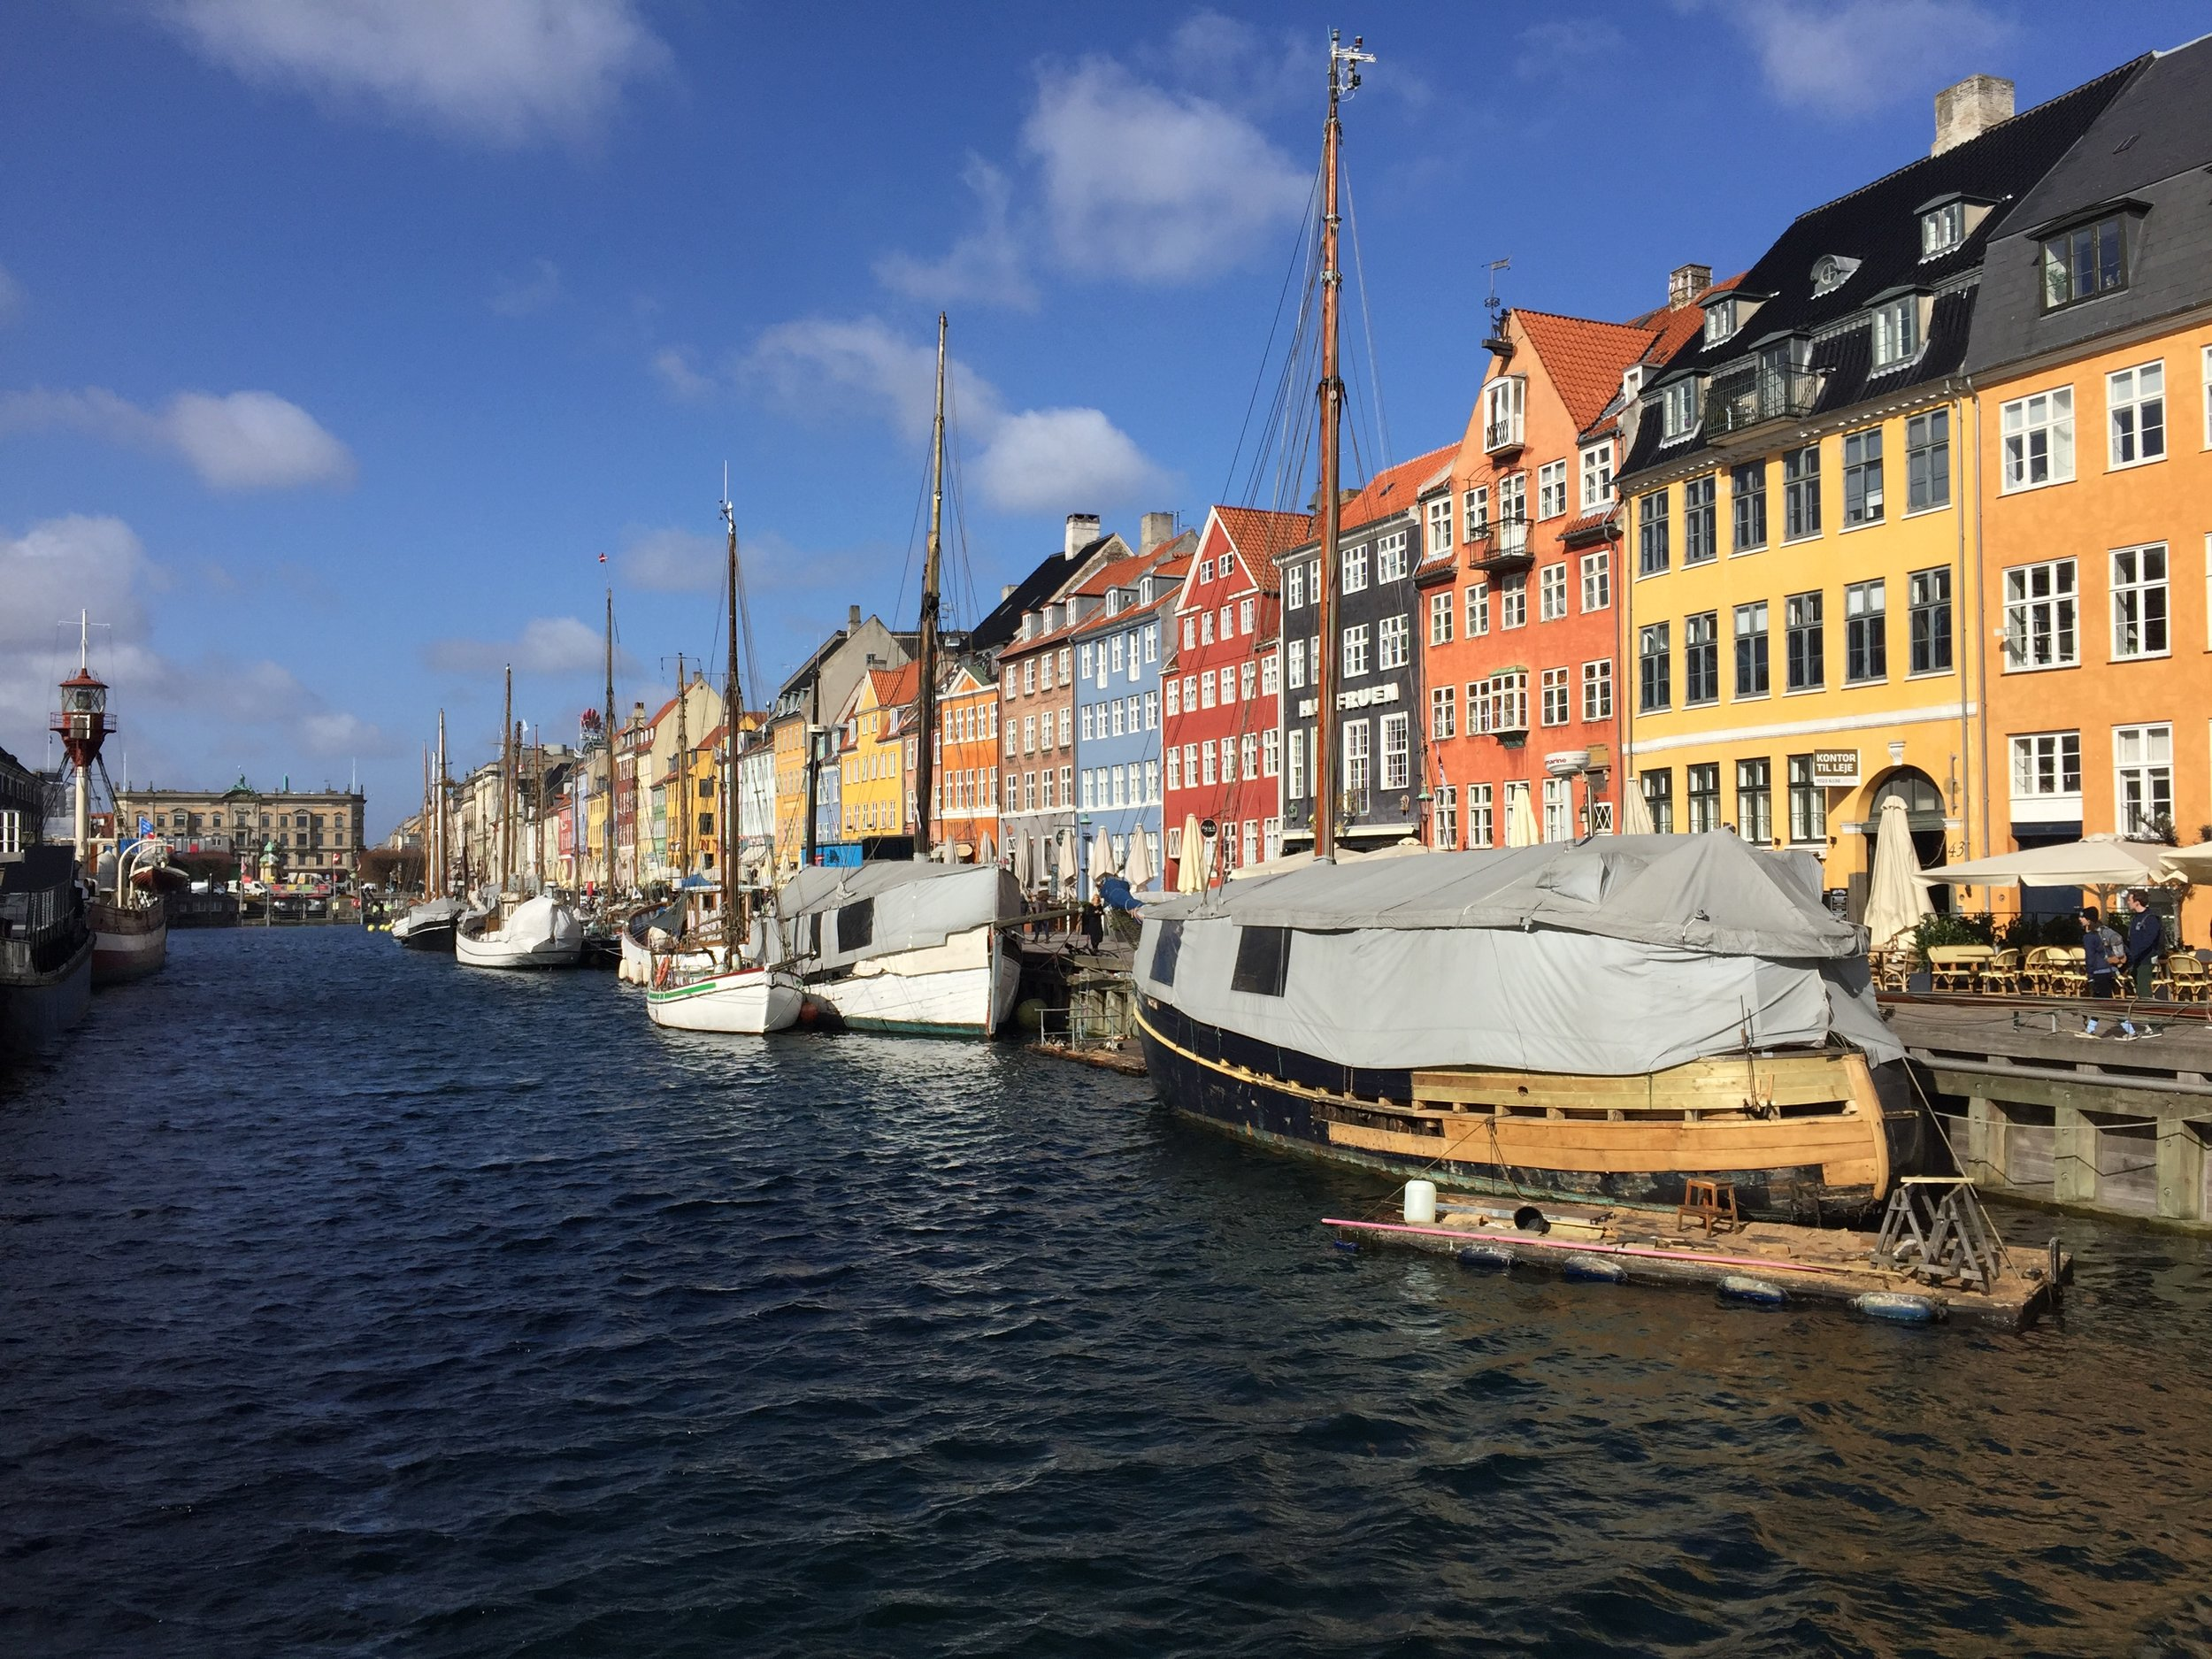 Nyhavn, a 17th-century waterfront, canal.